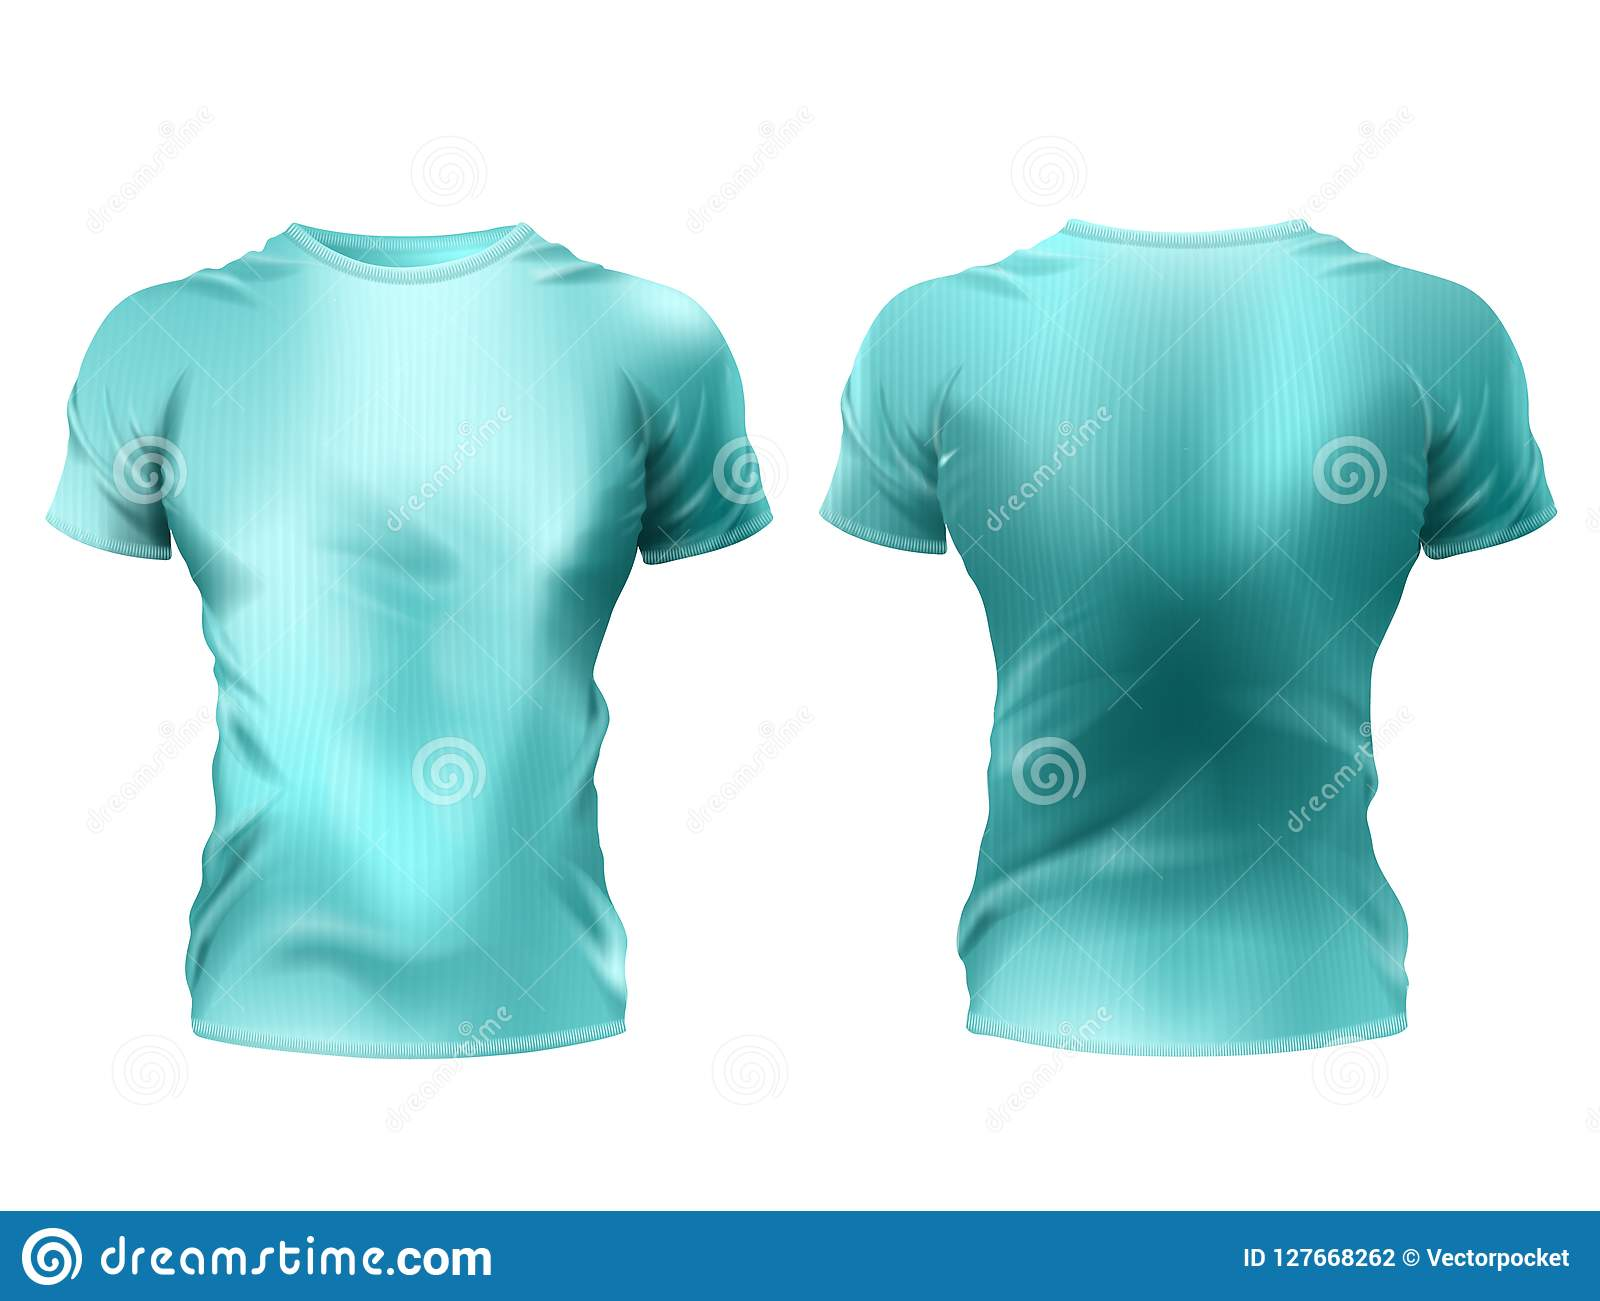 9fda71691 Vector 3d realistic male t-shirt mockup, blue shirts with short sleeves  isolated on white background. Casual unisex sportswear, front and back  view, ...